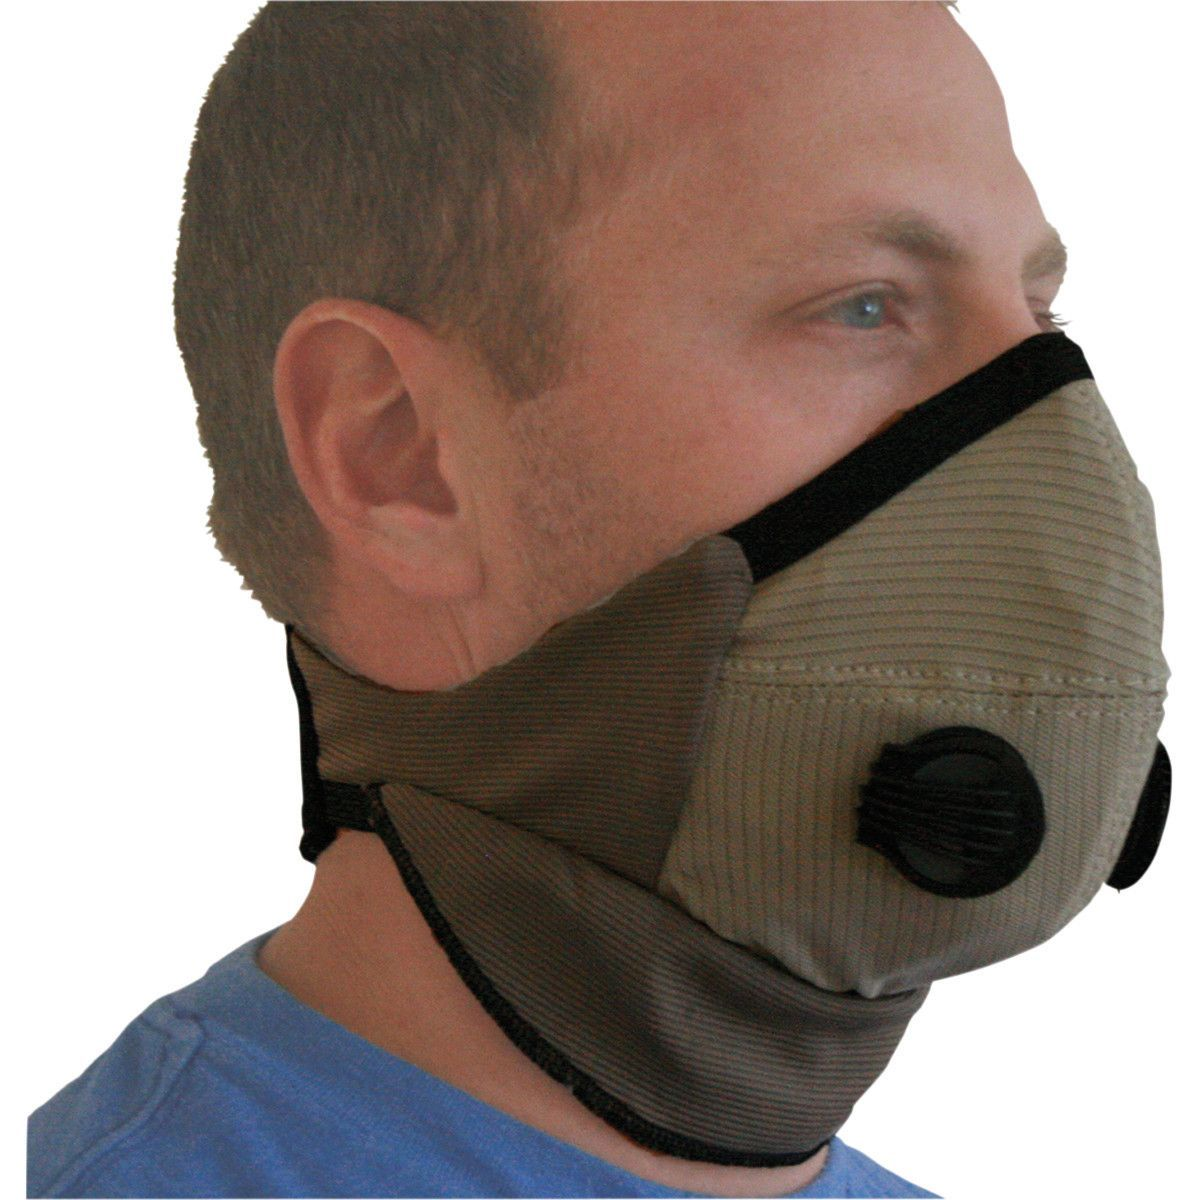 ATV Tek Dust Mask About ATV Tek Dust Masks This is the